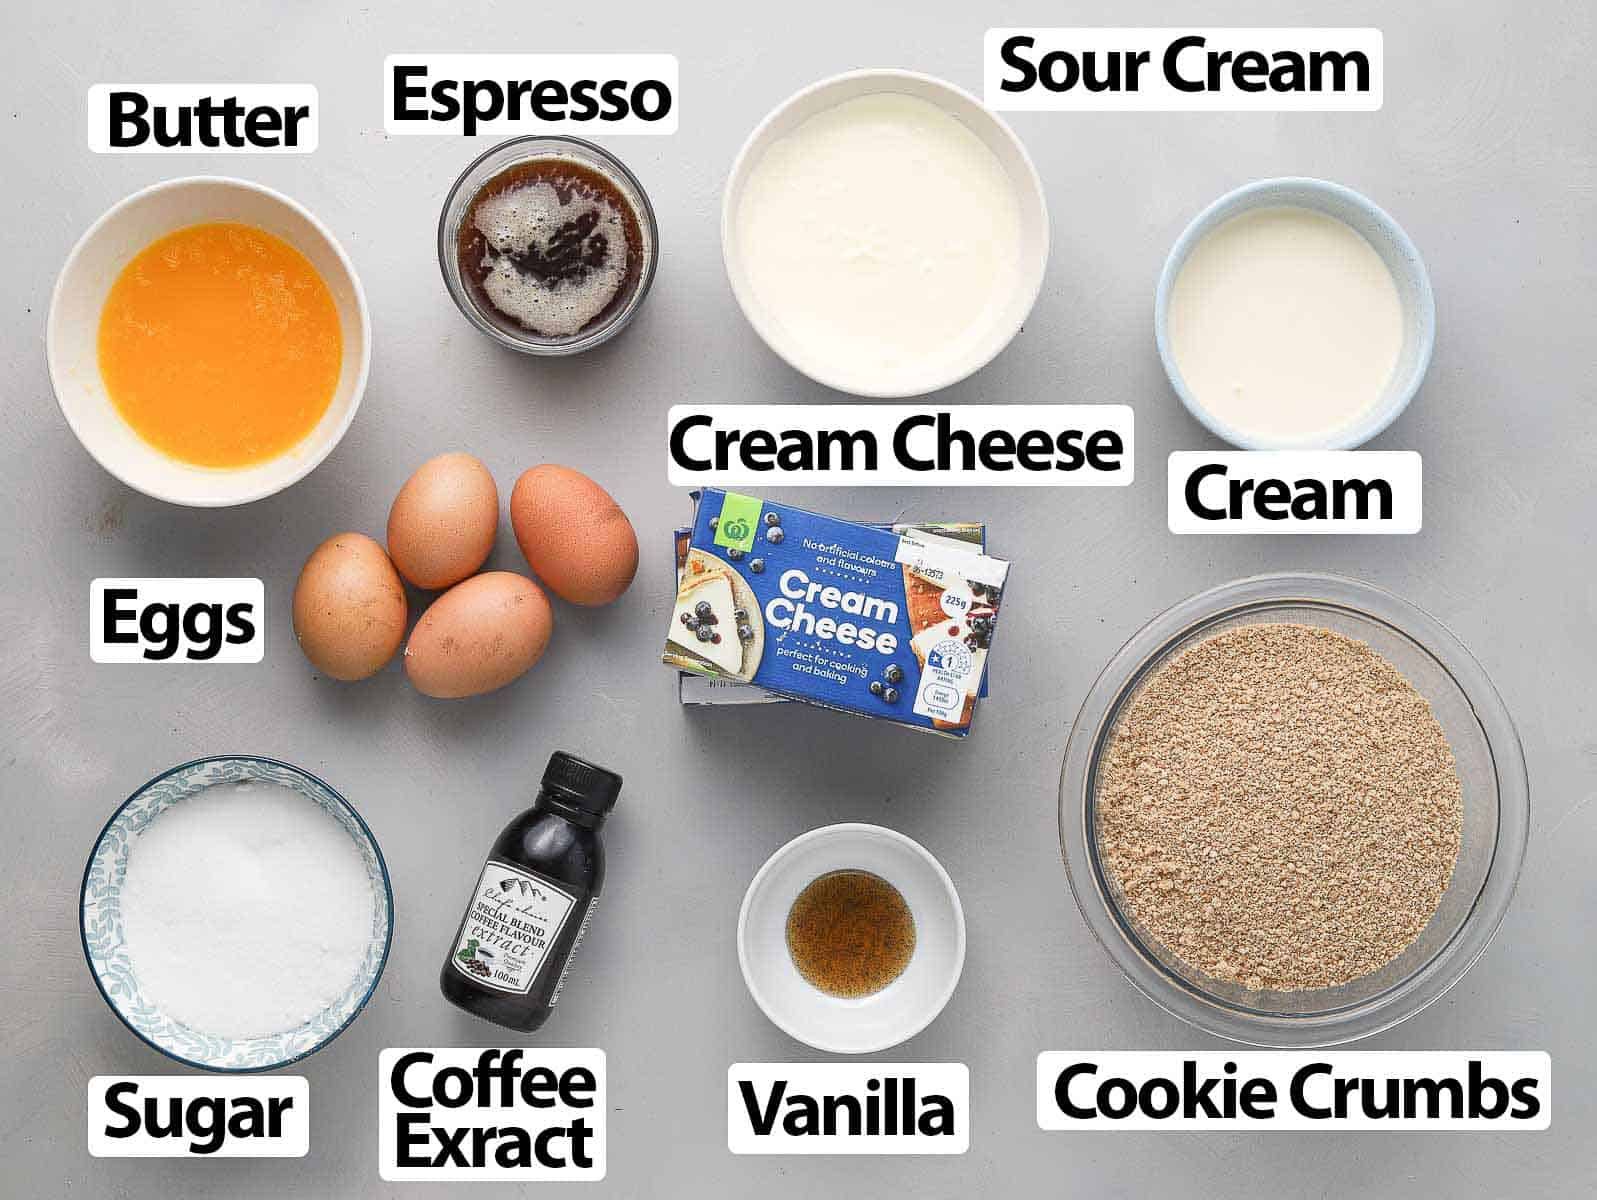 Ingredients on a grey surface.